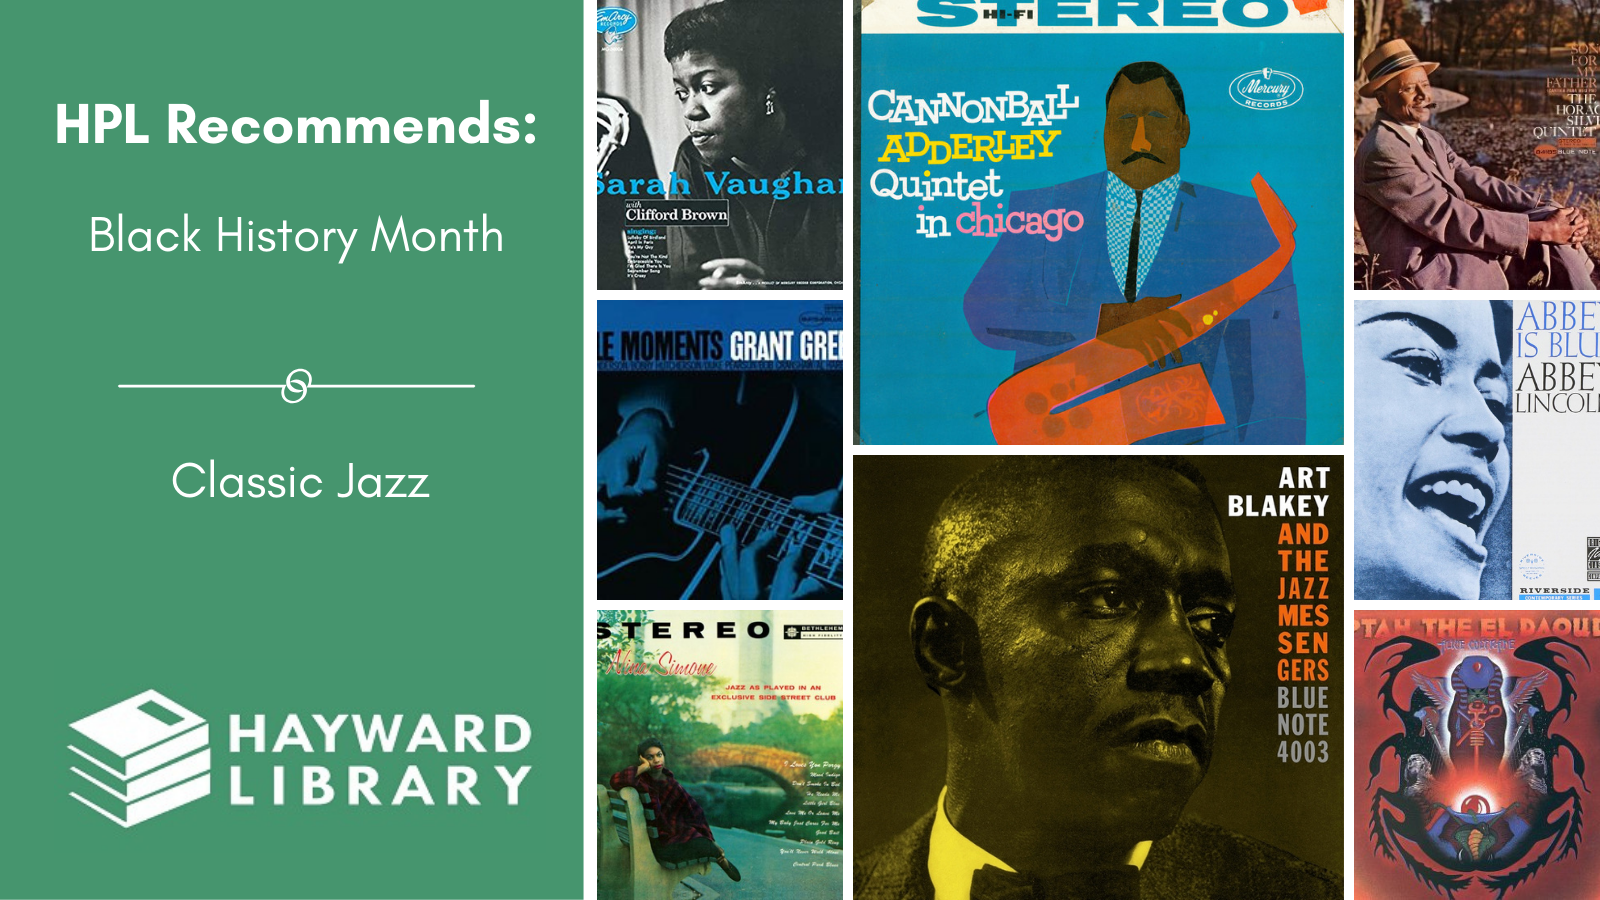 Collage of book covers with a green block on left side that says HPL Recommends, Black History Month, Classic Jazz in white text, with Hayward Library logo below it.